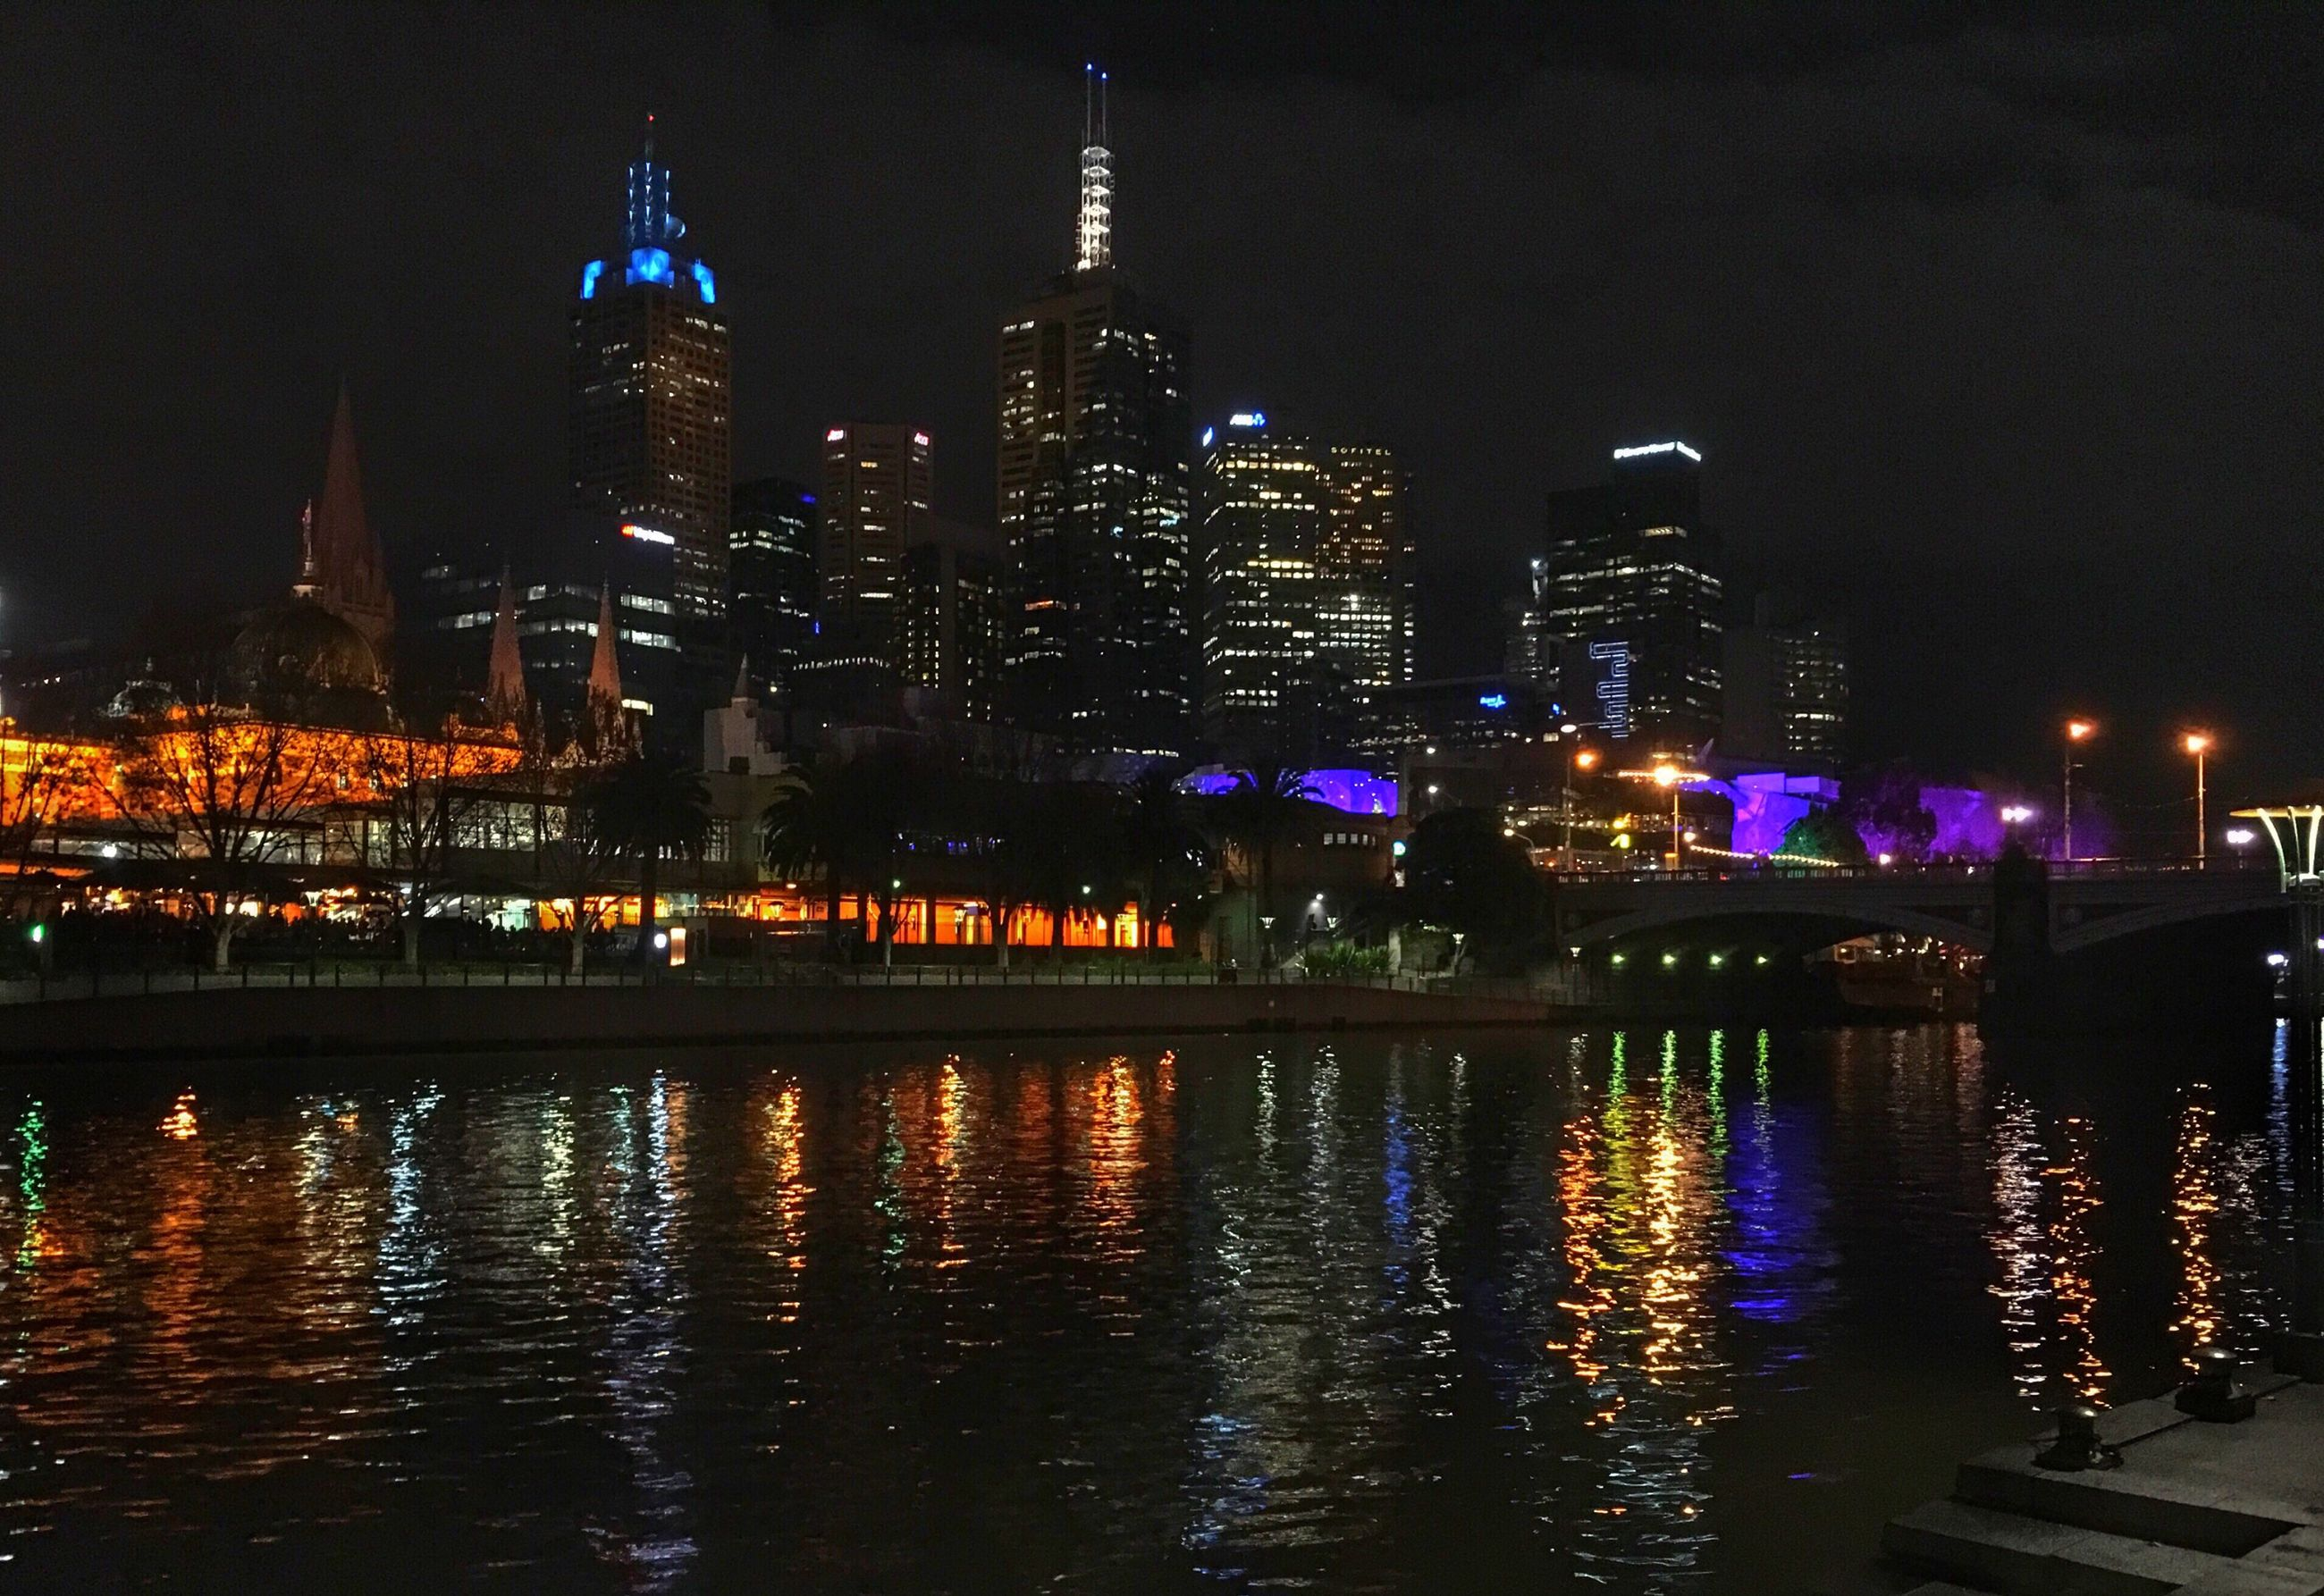 illuminated, night, building exterior, architecture, city, built structure, water, reflection, waterfront, river, cityscape, skyscraper, tower, tall - high, city life, modern, travel destinations, urban skyline, office building, capital cities